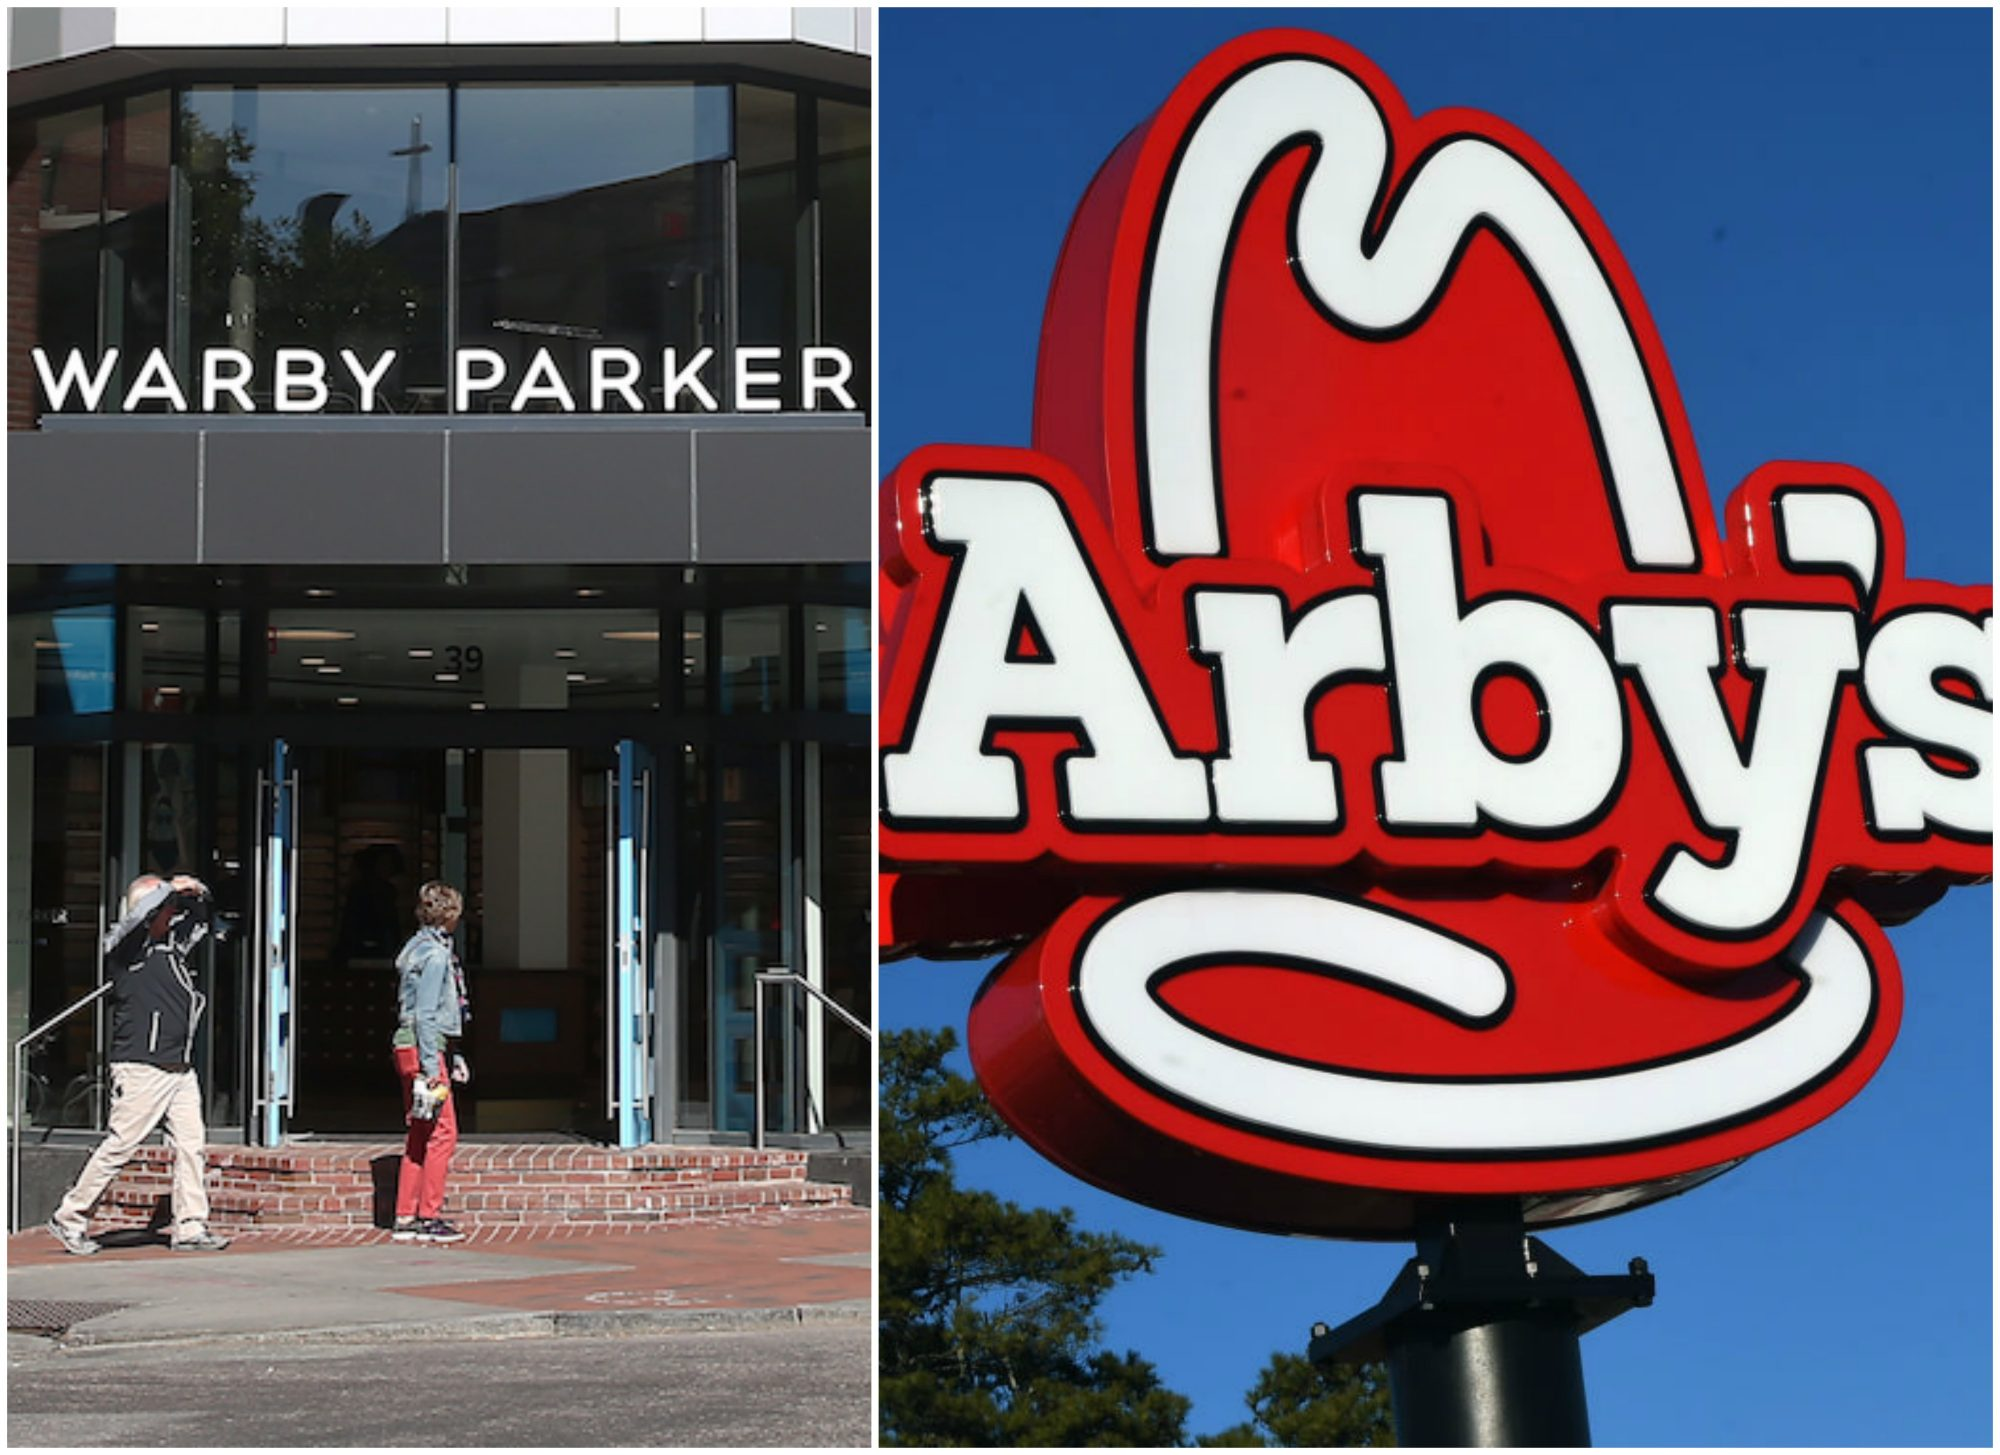 Arby's and Warby Parker April Fools'